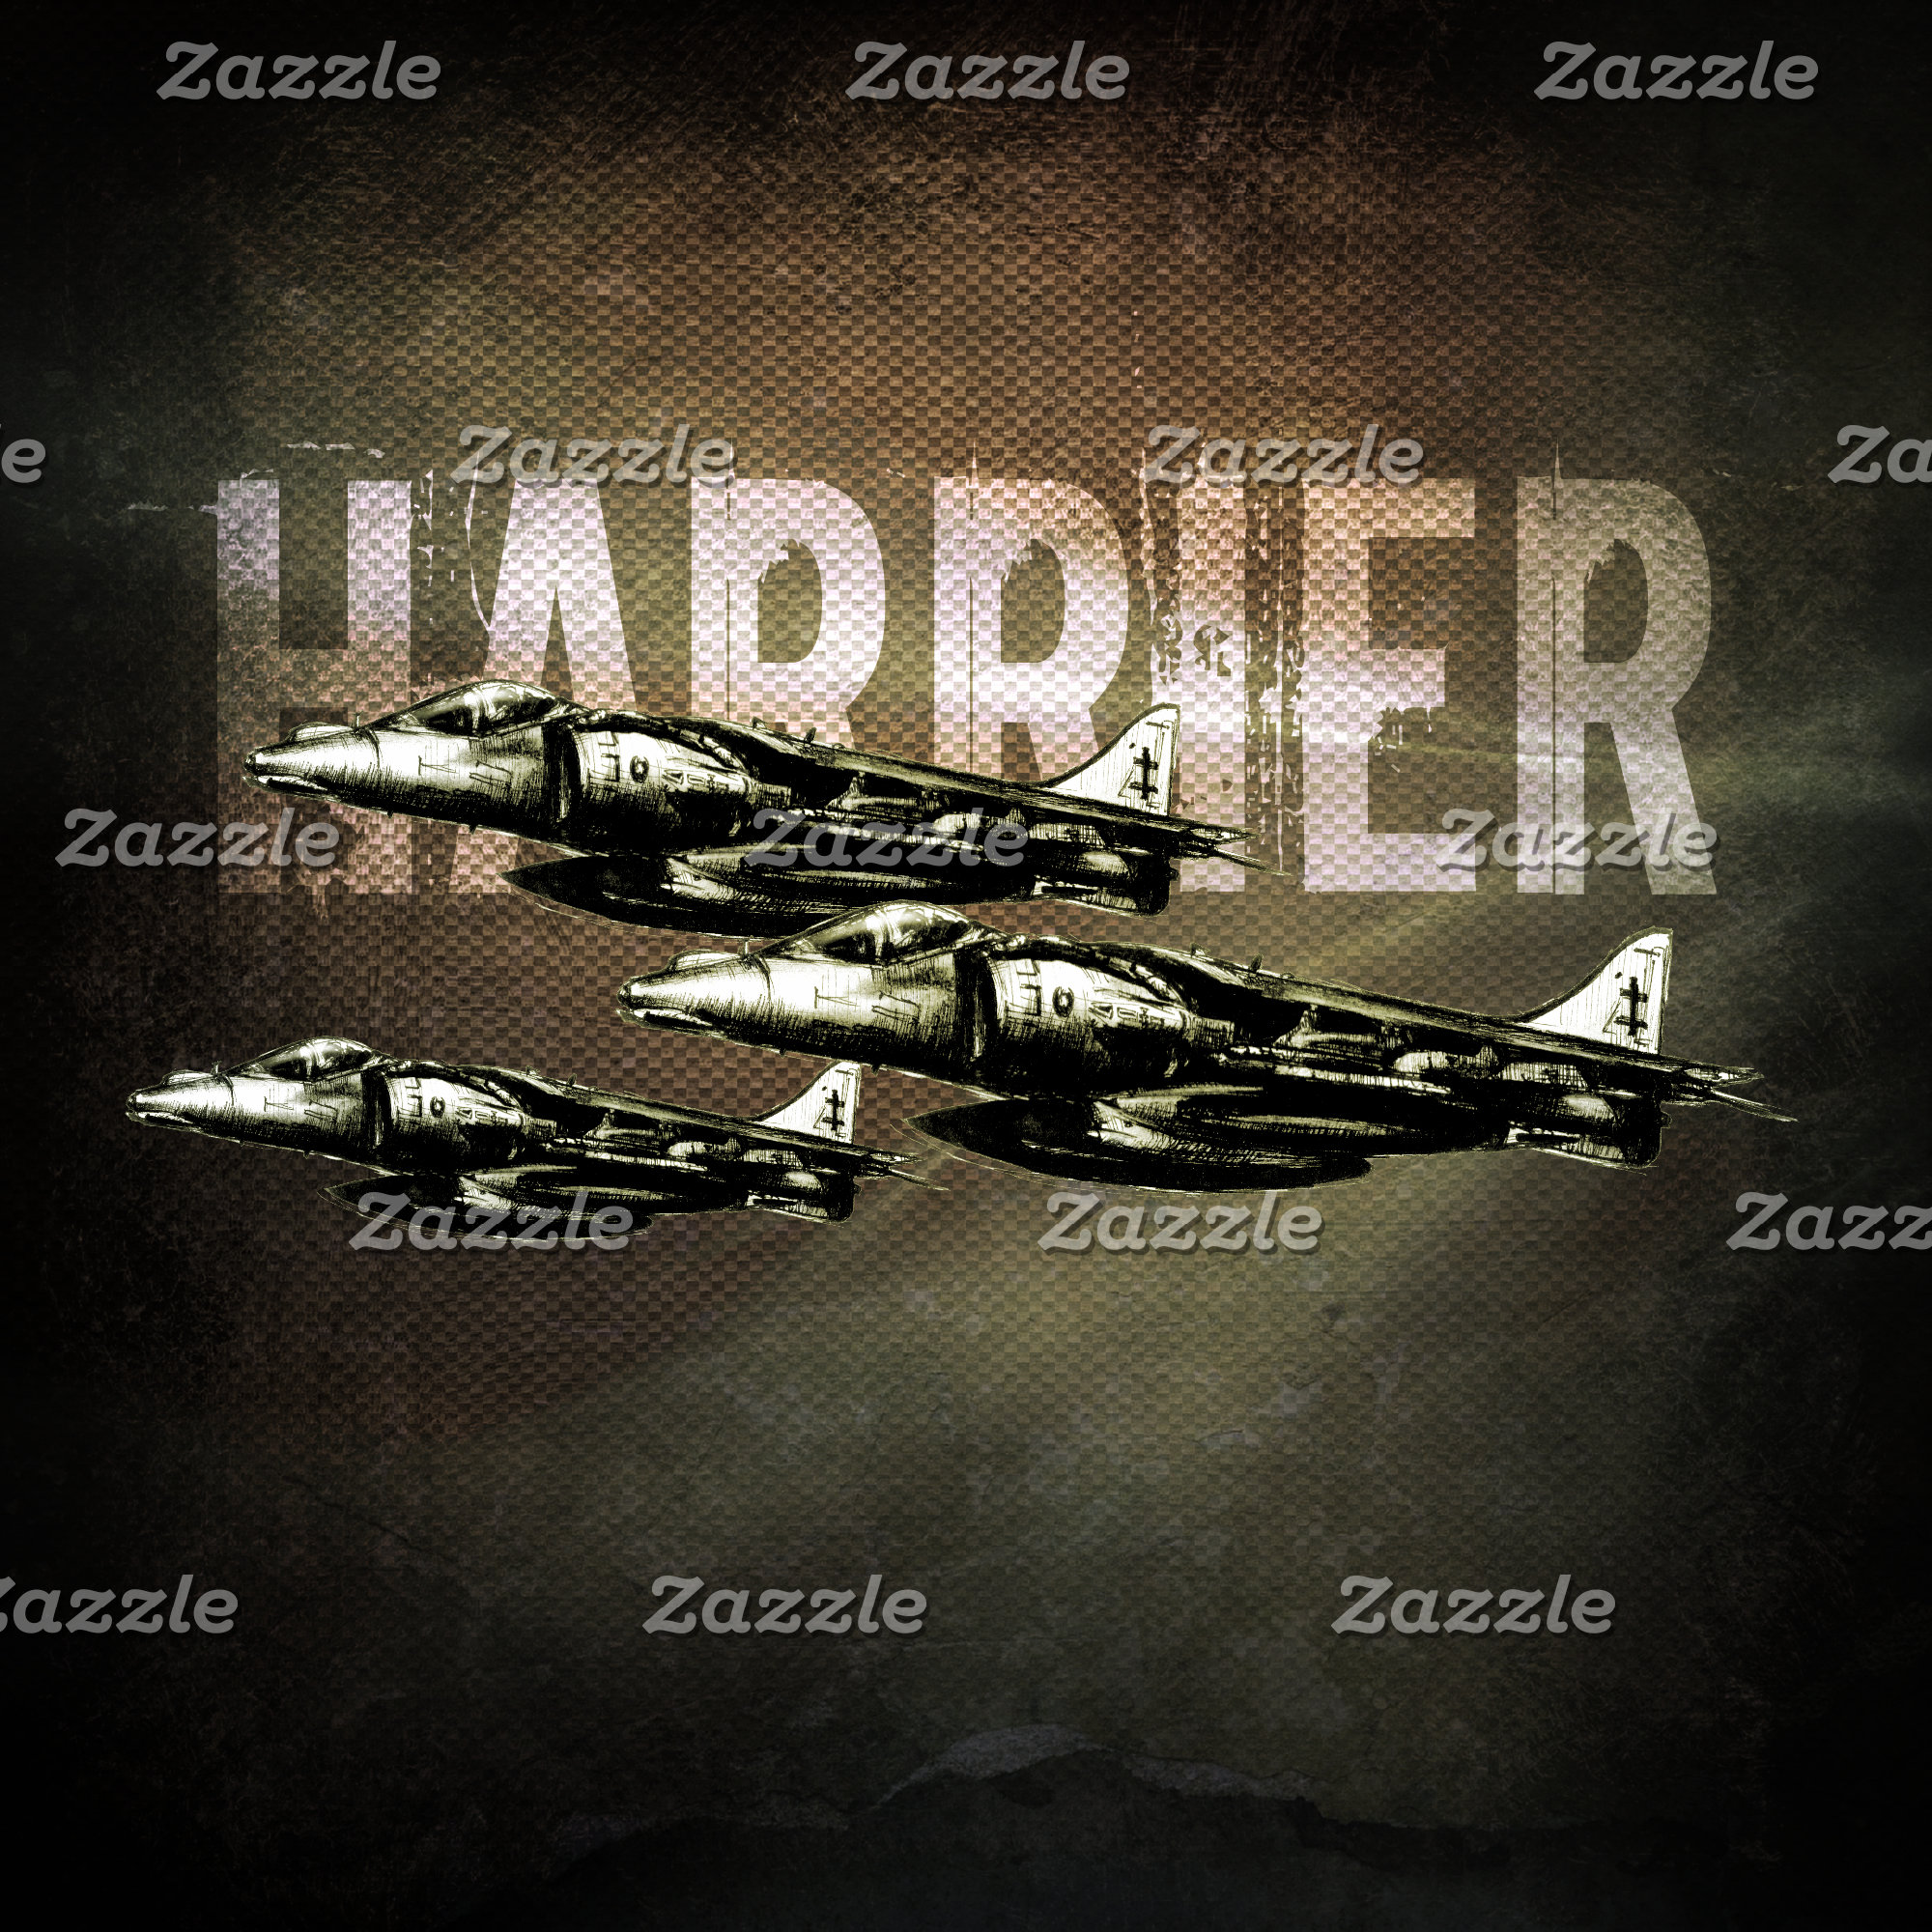 Harrier Jet Fighter-Bombers